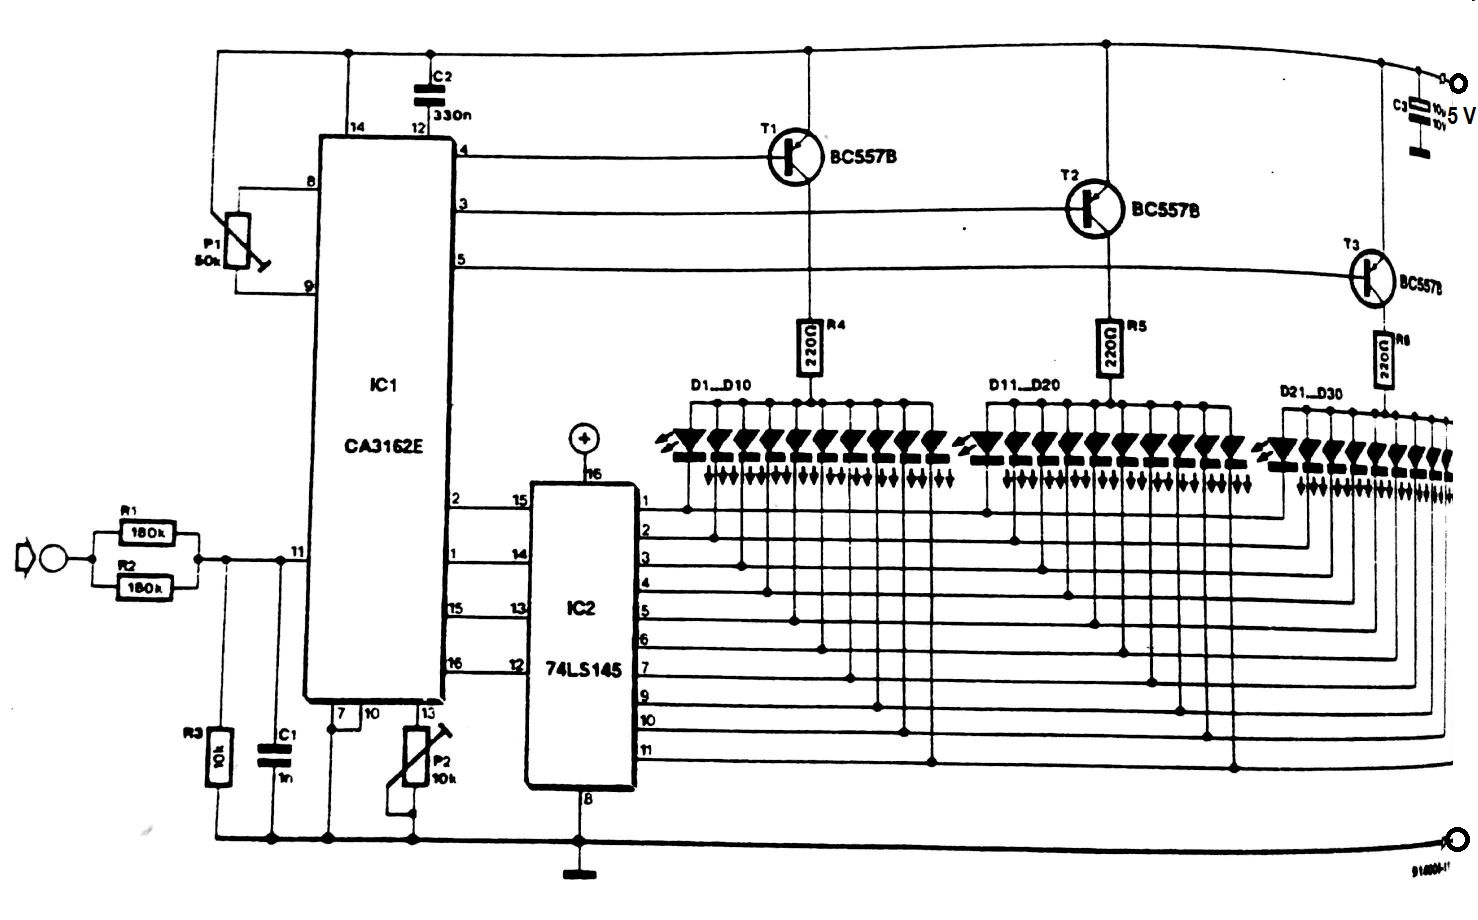 Digital LED Voltmeter Circuit Diagram. Digital LED voltmeter